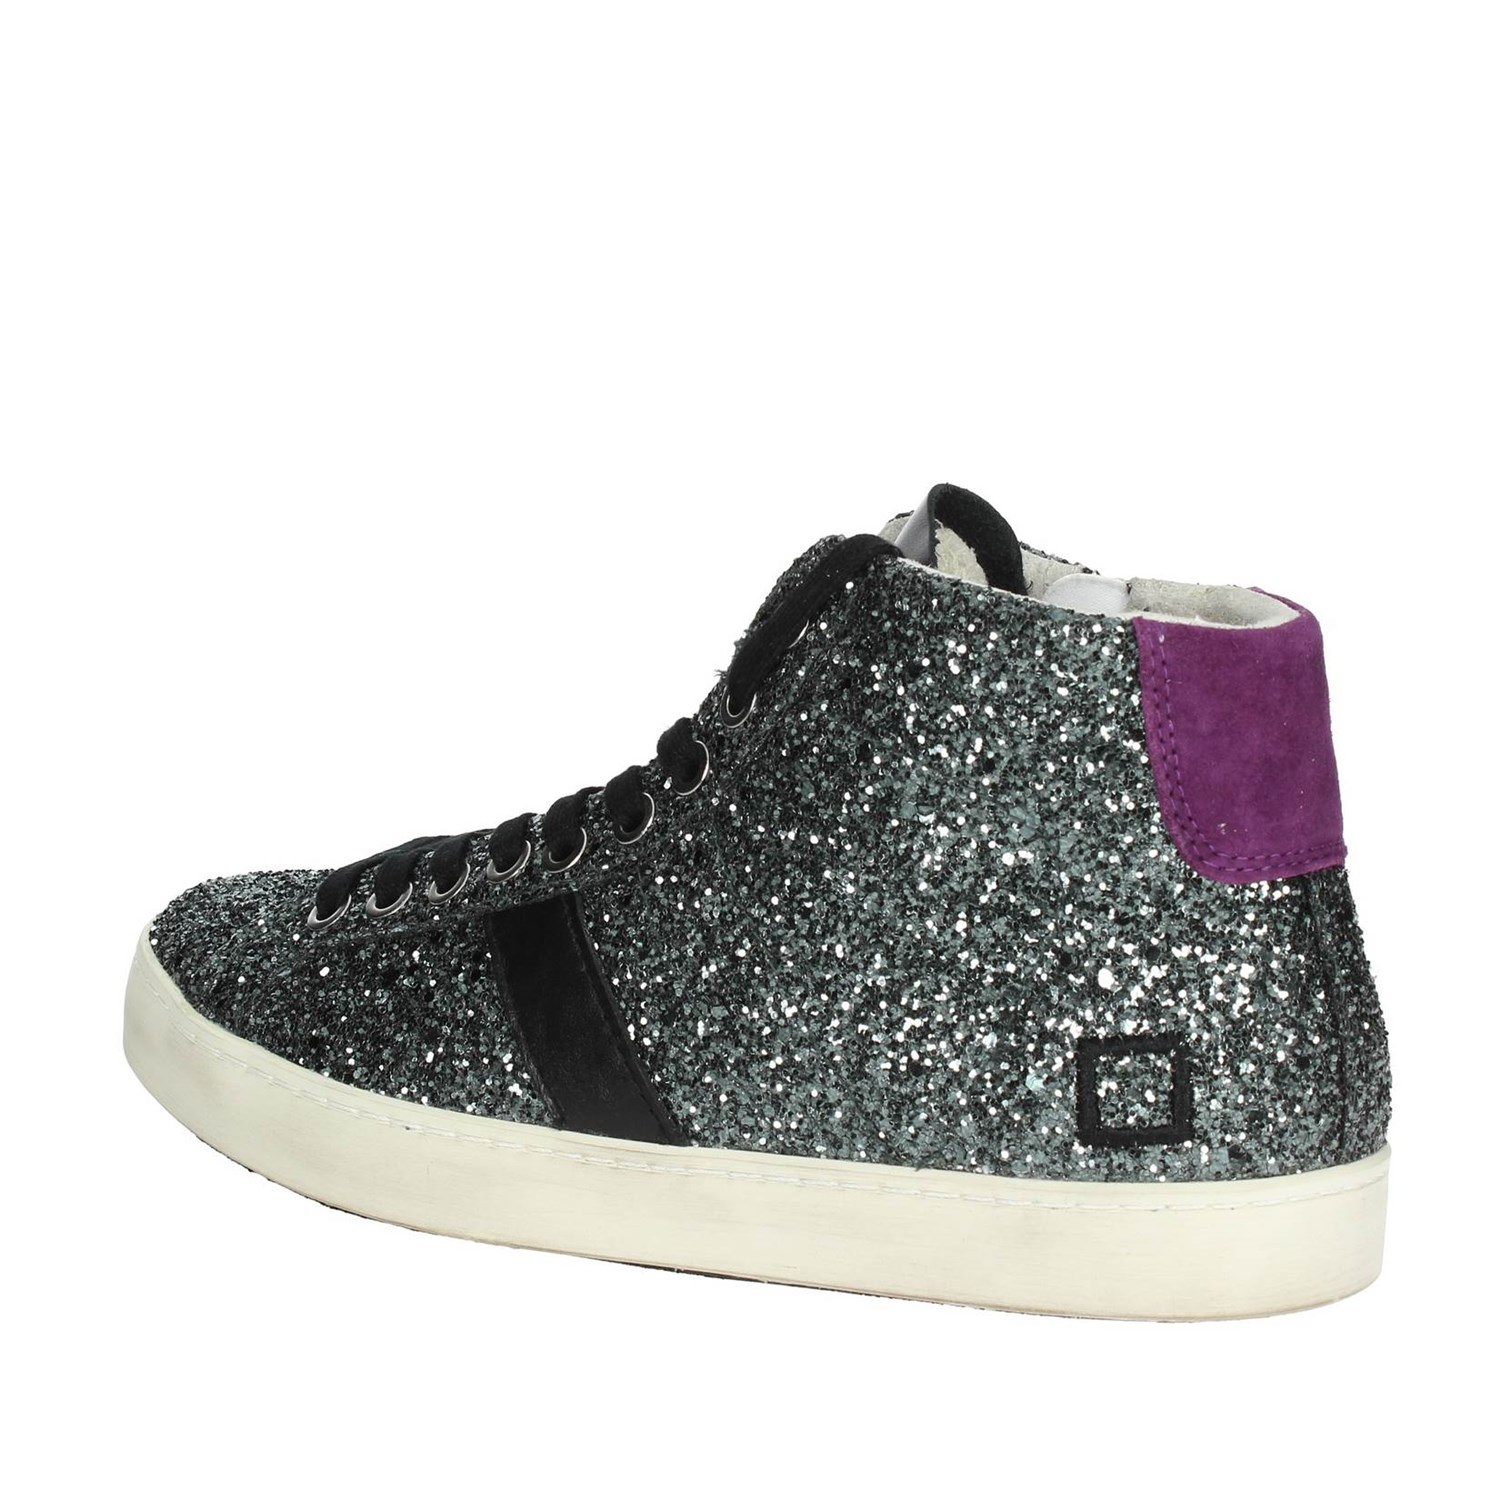 finest selection adcef 1d83d Details about D.a.t.e. HILL HIGH-5I Charcoal grey High Sneakers Women  Fall/Winter